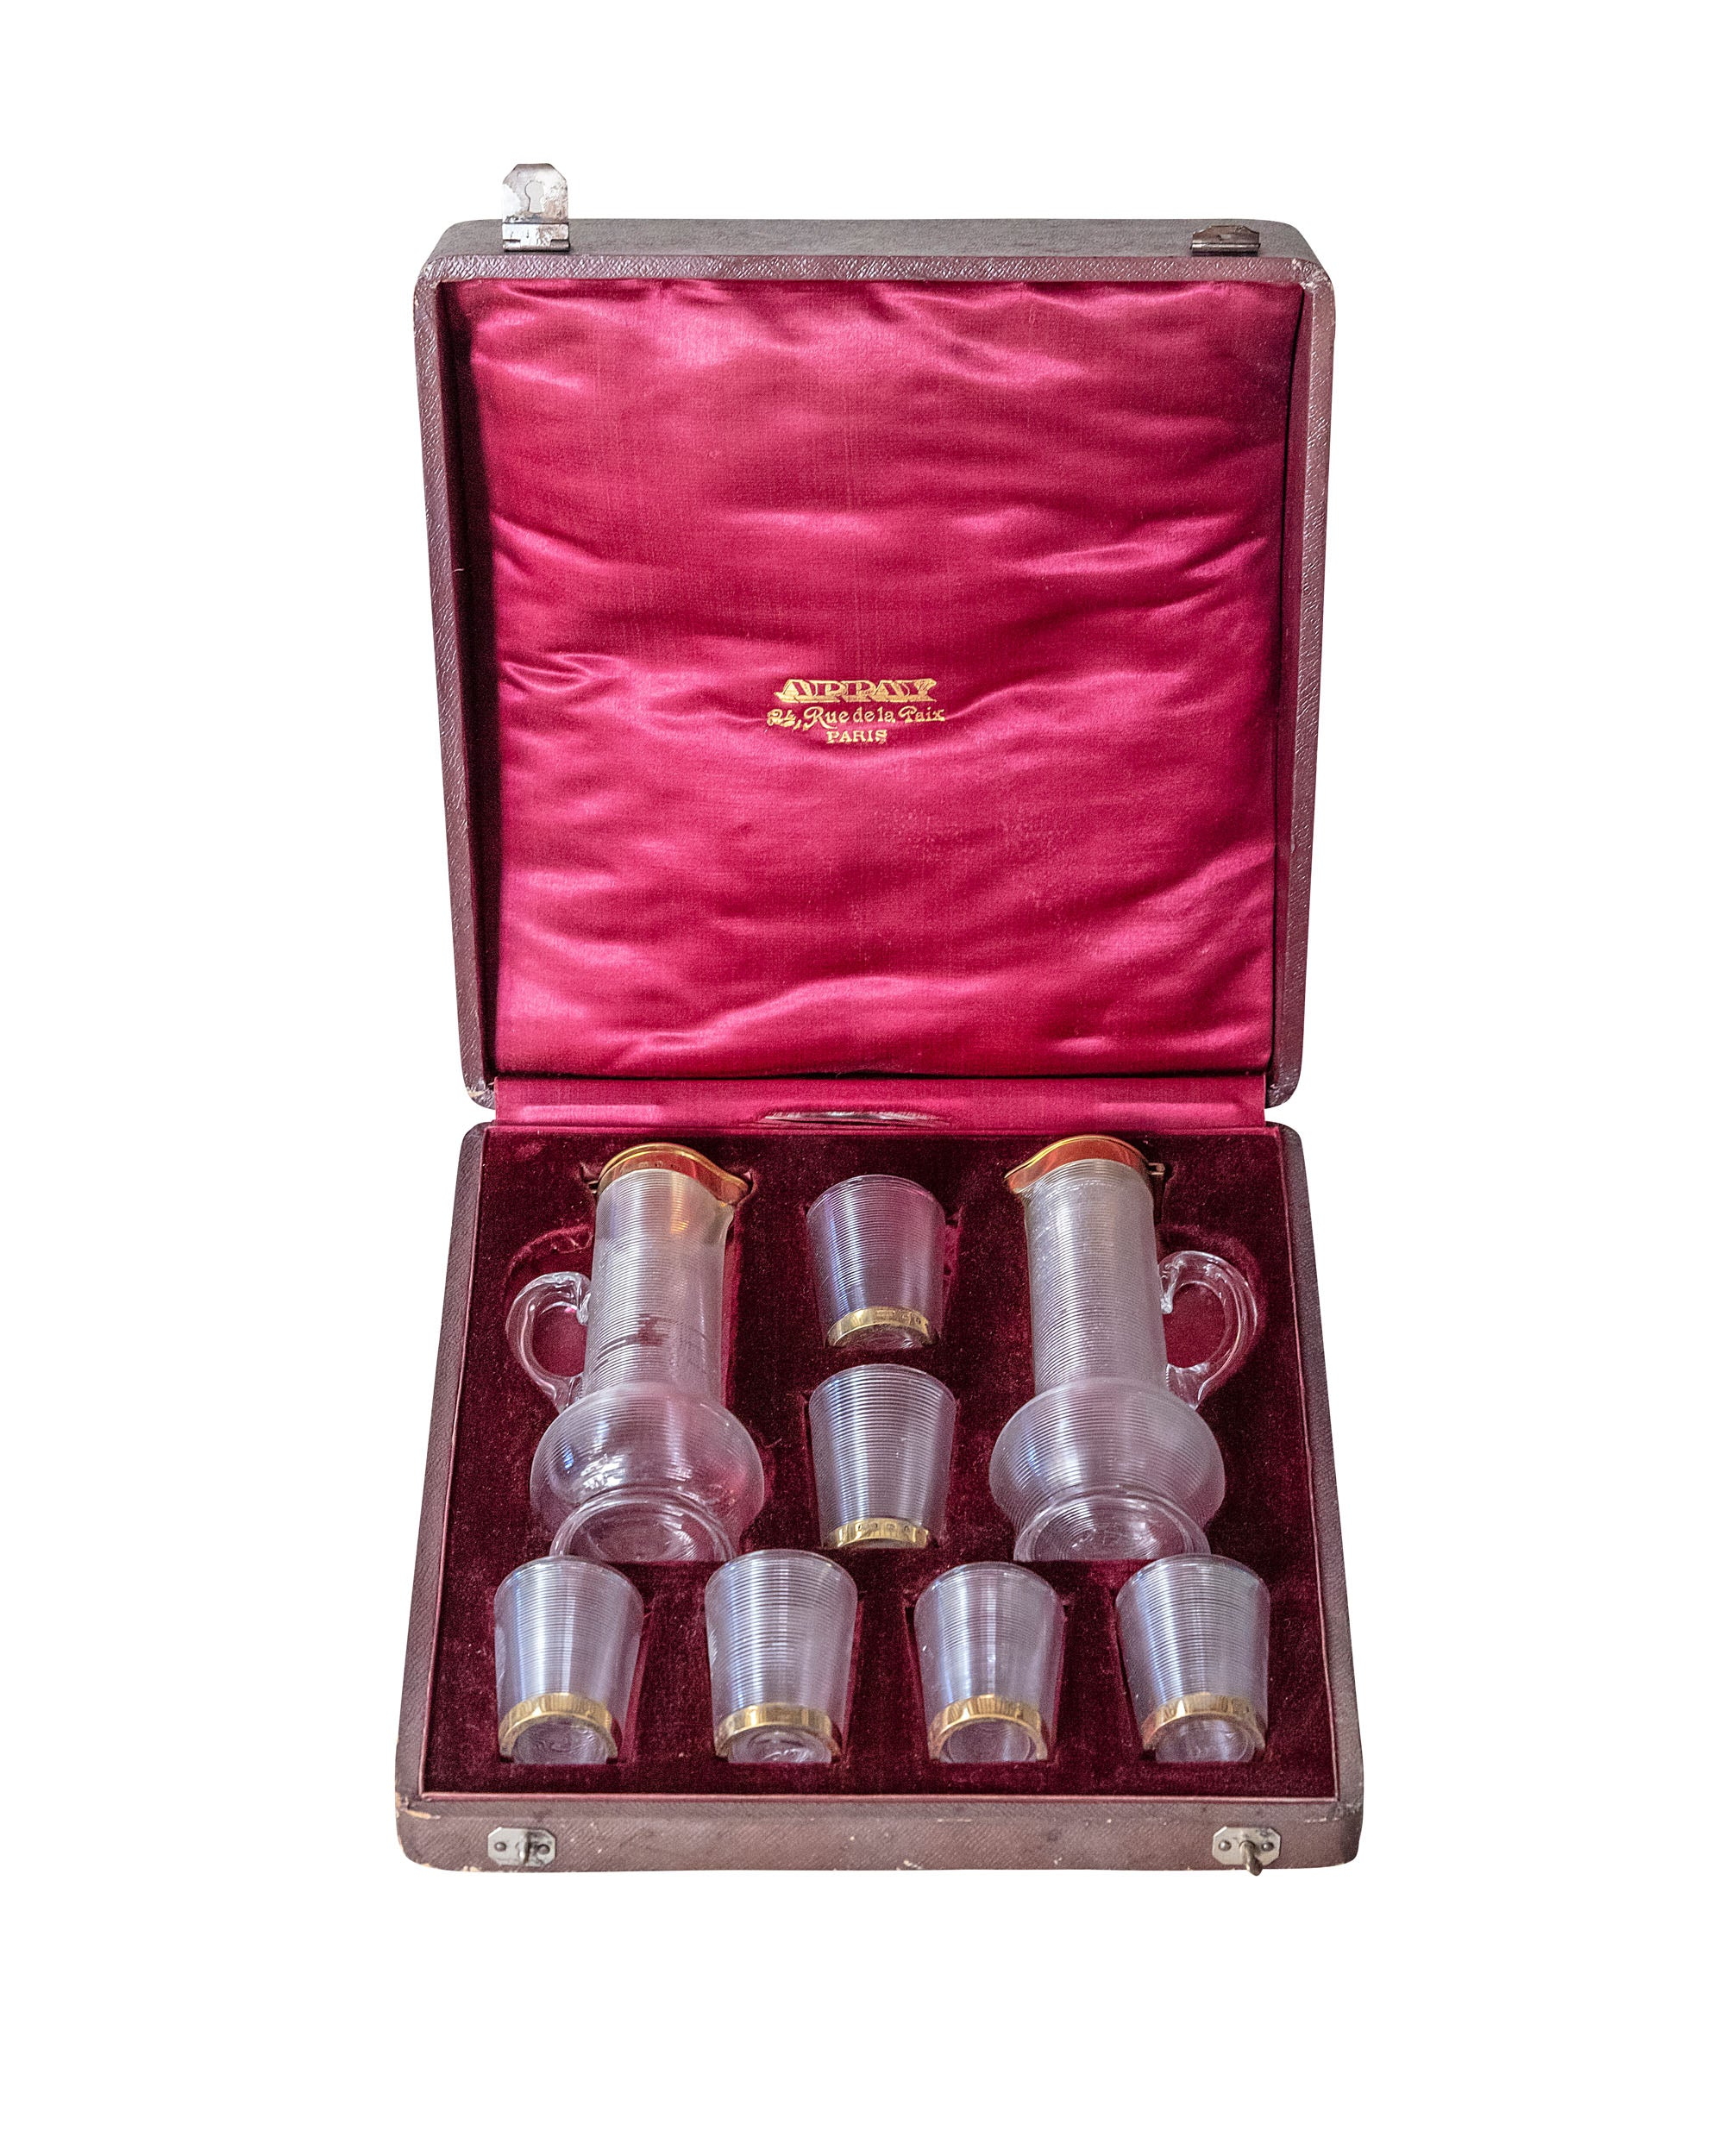 Aspay house liquor set consisting of two jugs and six Bacarrat glasses with golden edge. All in a leather case with original velvet